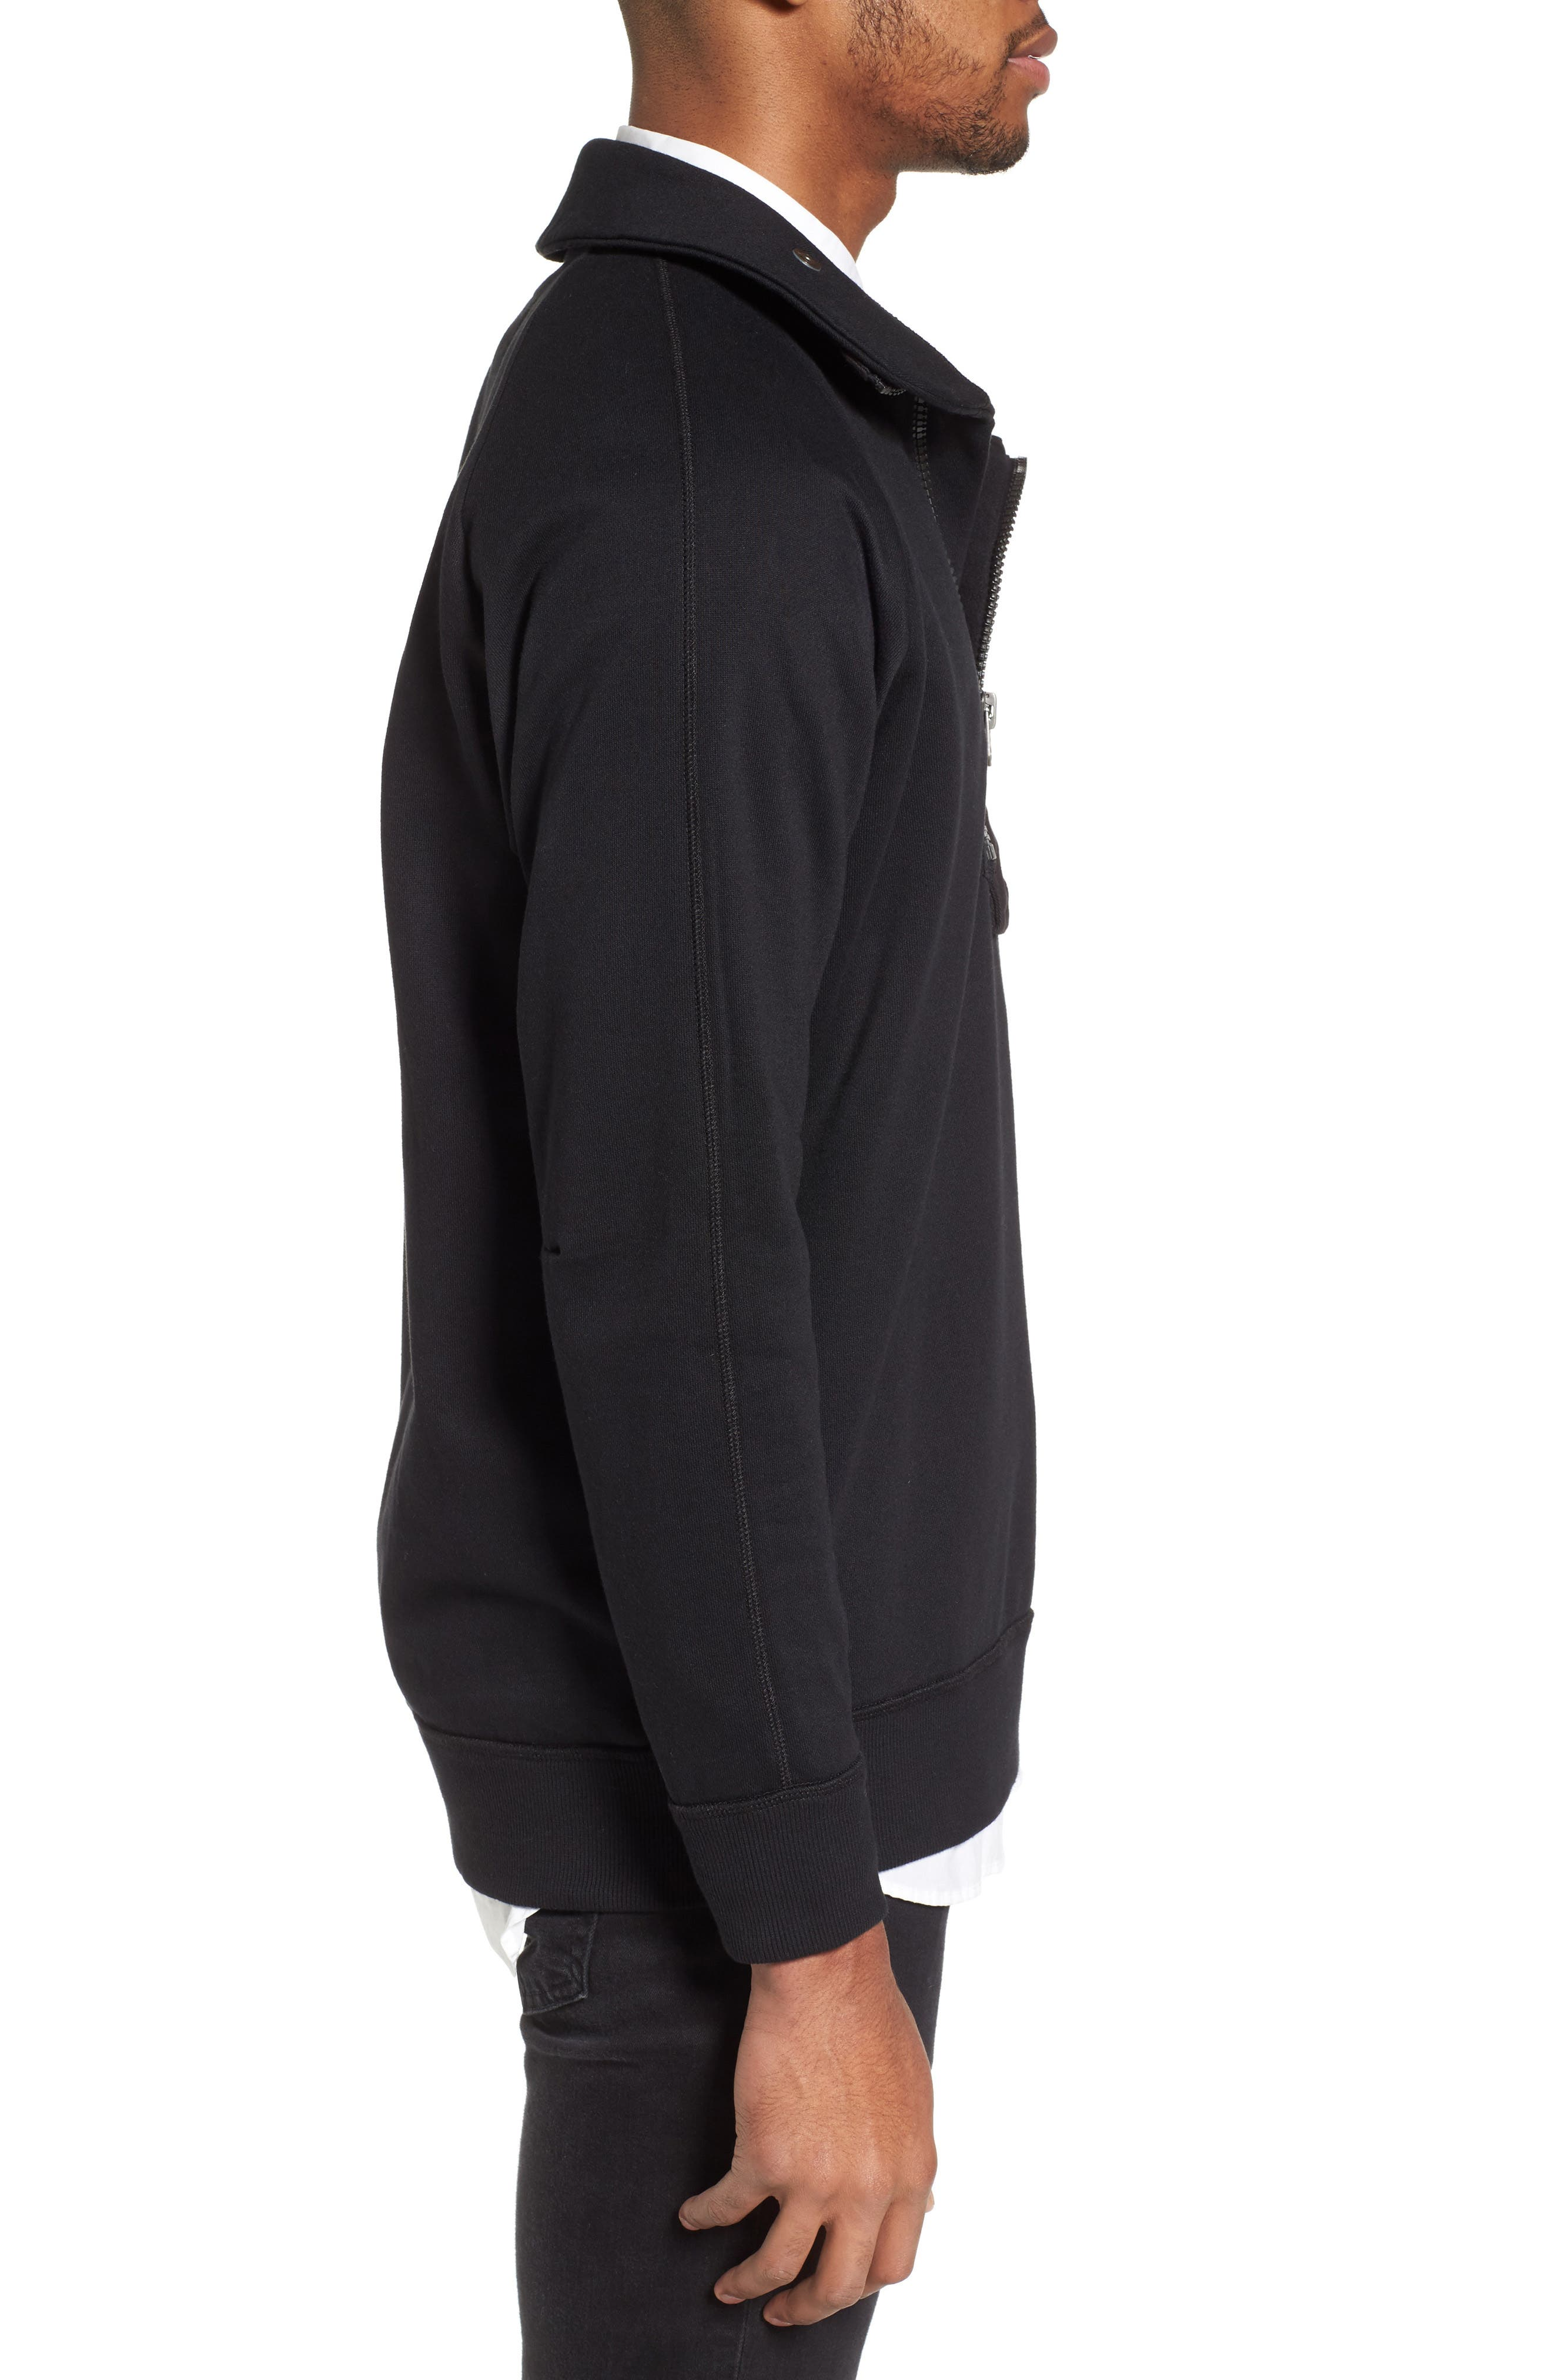 Empral Quarter Zip Pullover,                             Alternate thumbnail 3, color,                             Dark Black